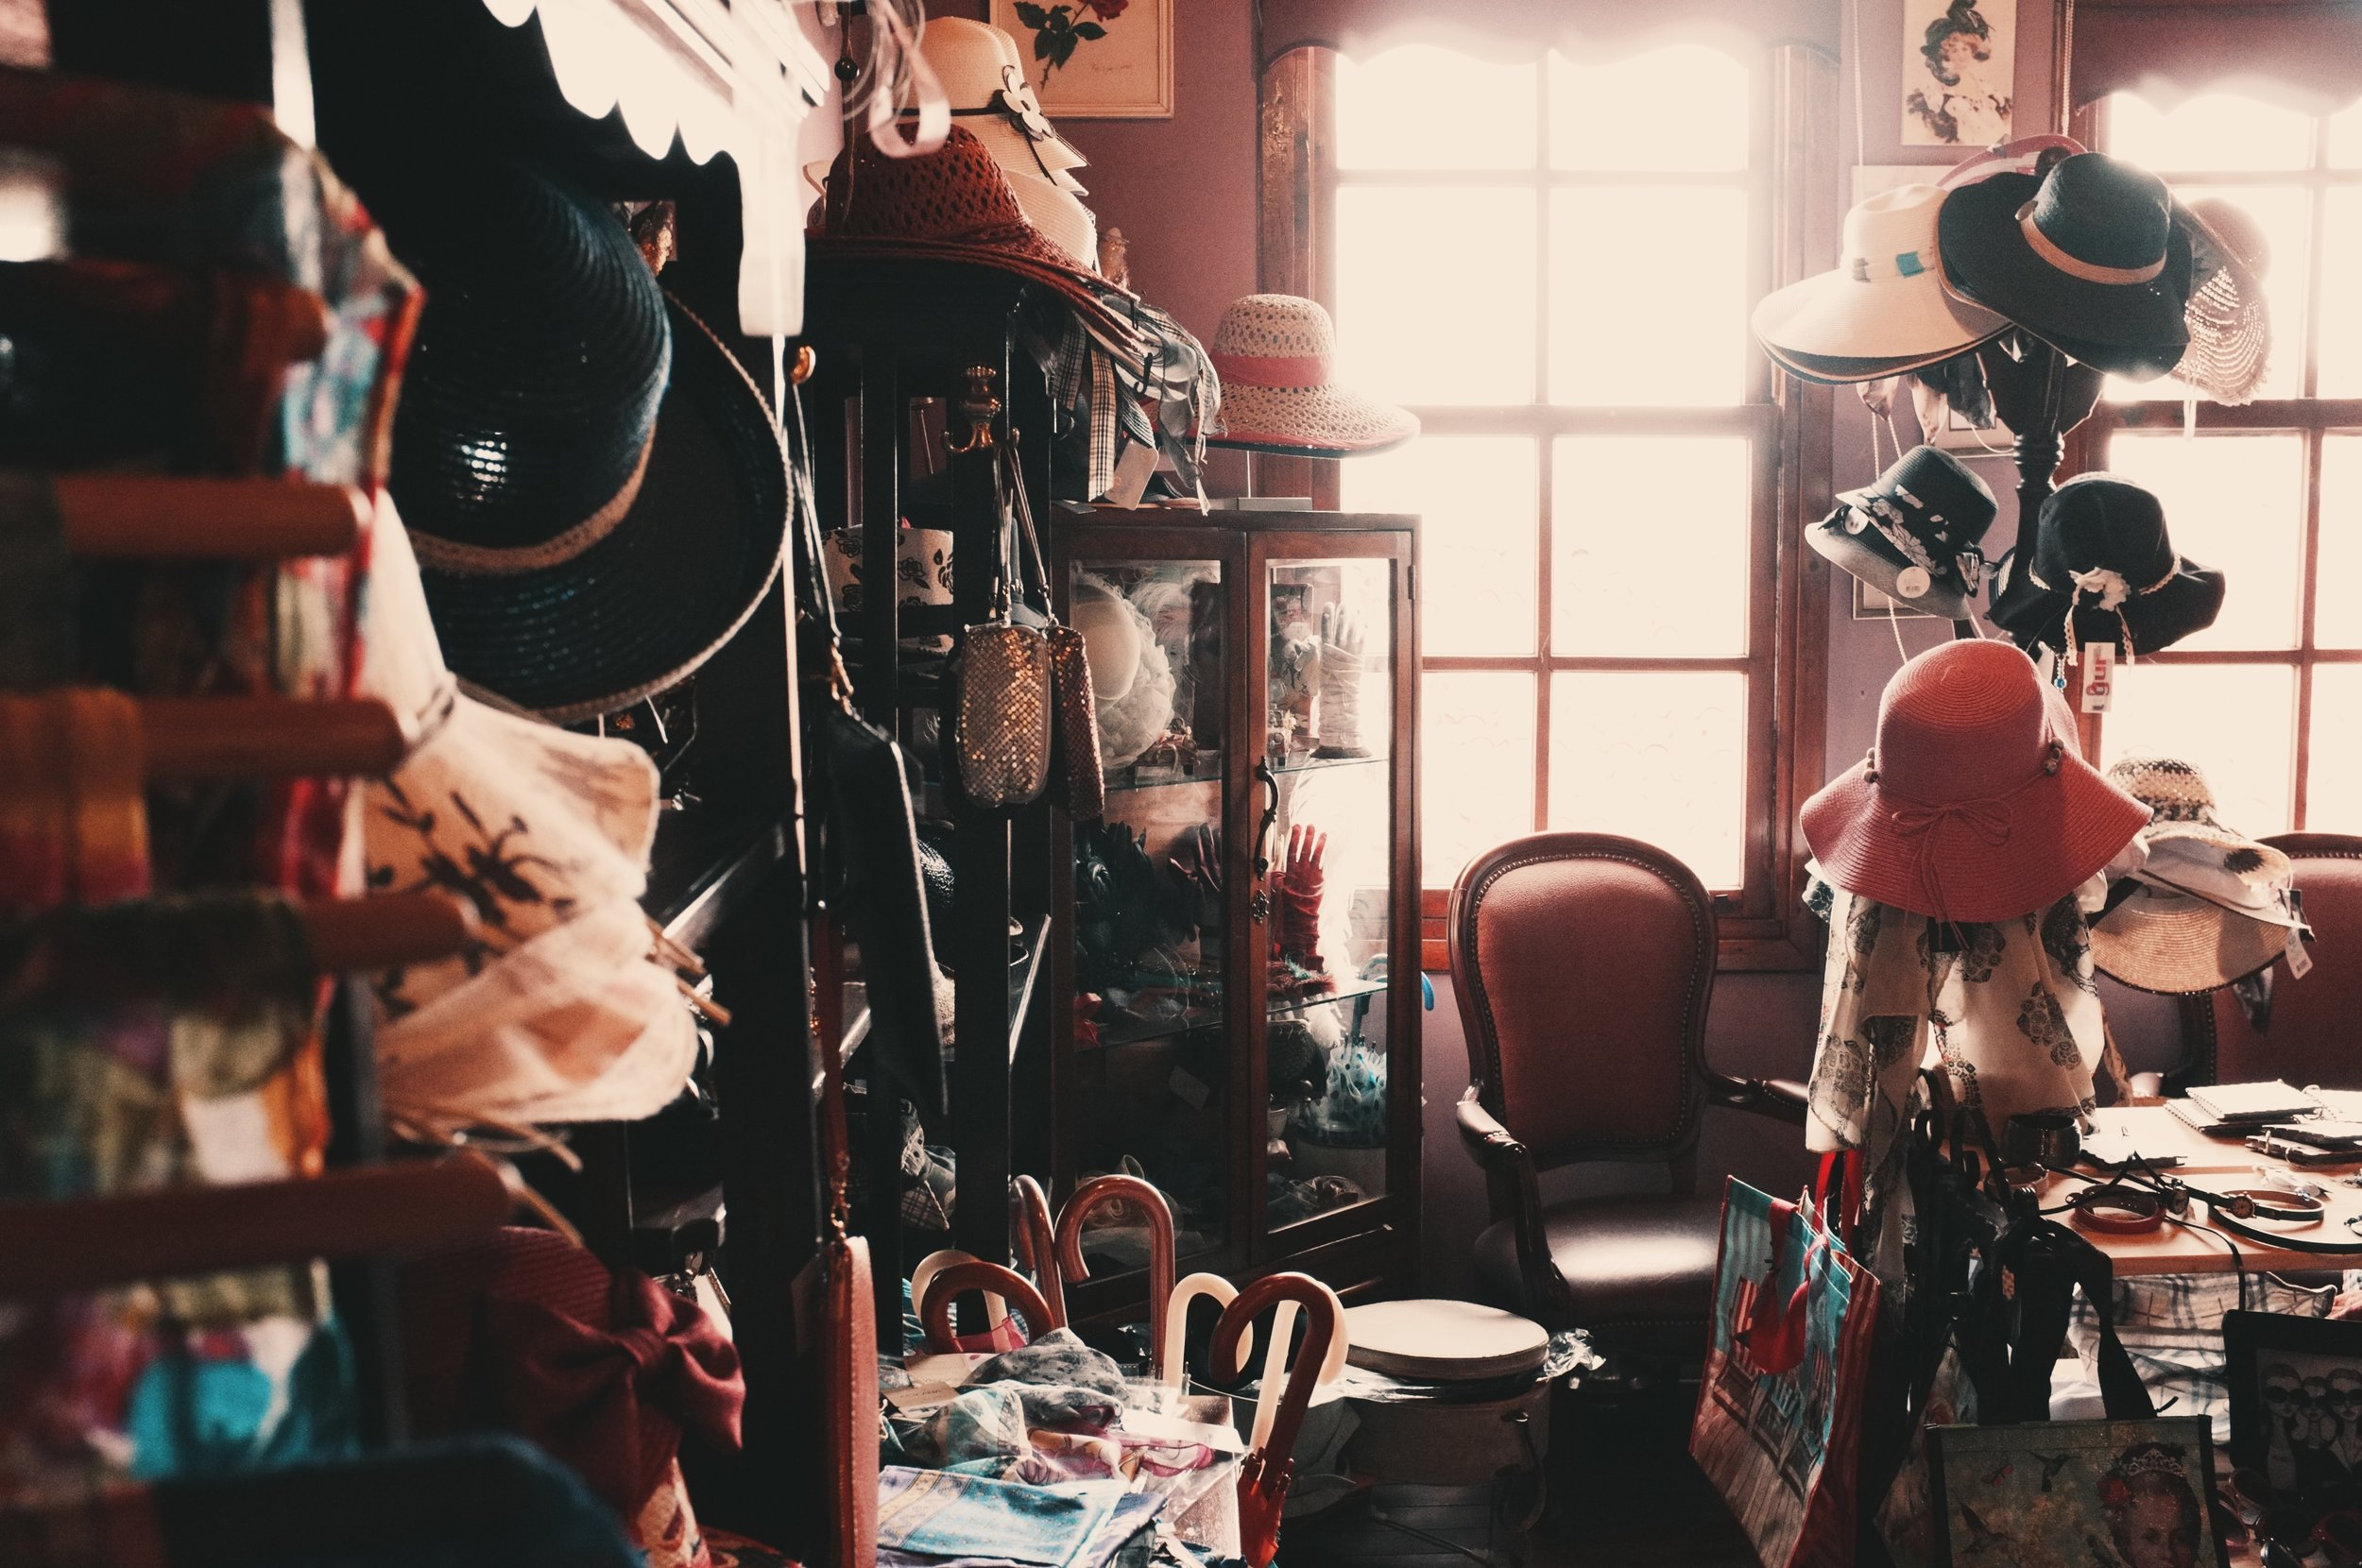 Many times, clutter occupies more than physical space. It can also clutter our minds and cause us to feel bogged down and affect our creativity. Photo by  Onur Bahçıvancılar  on  Unsplash